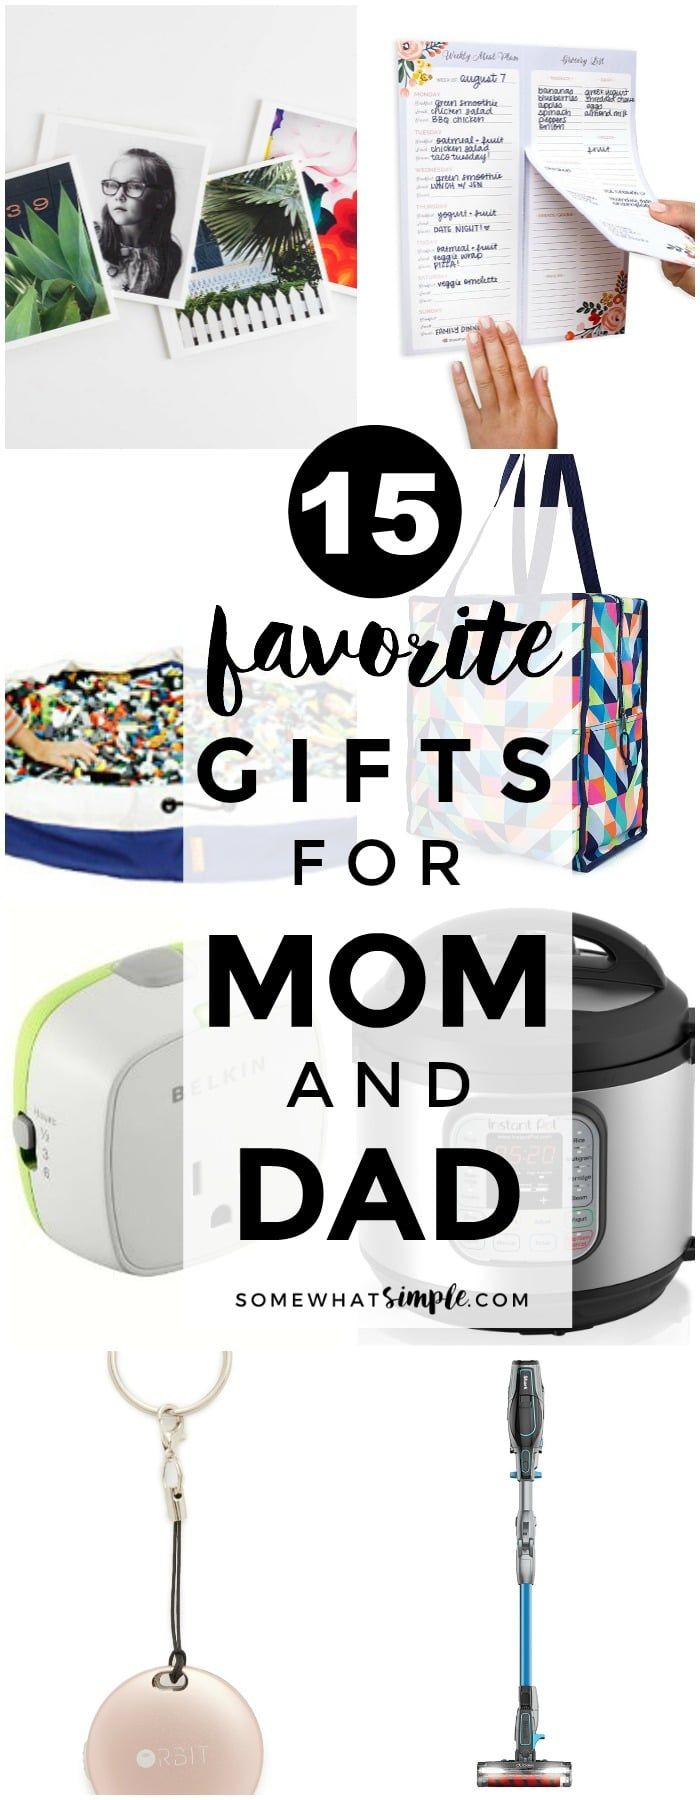 860 best gifts diy images on pinterest bricolage for Thoughtful gifts for dad from daughter